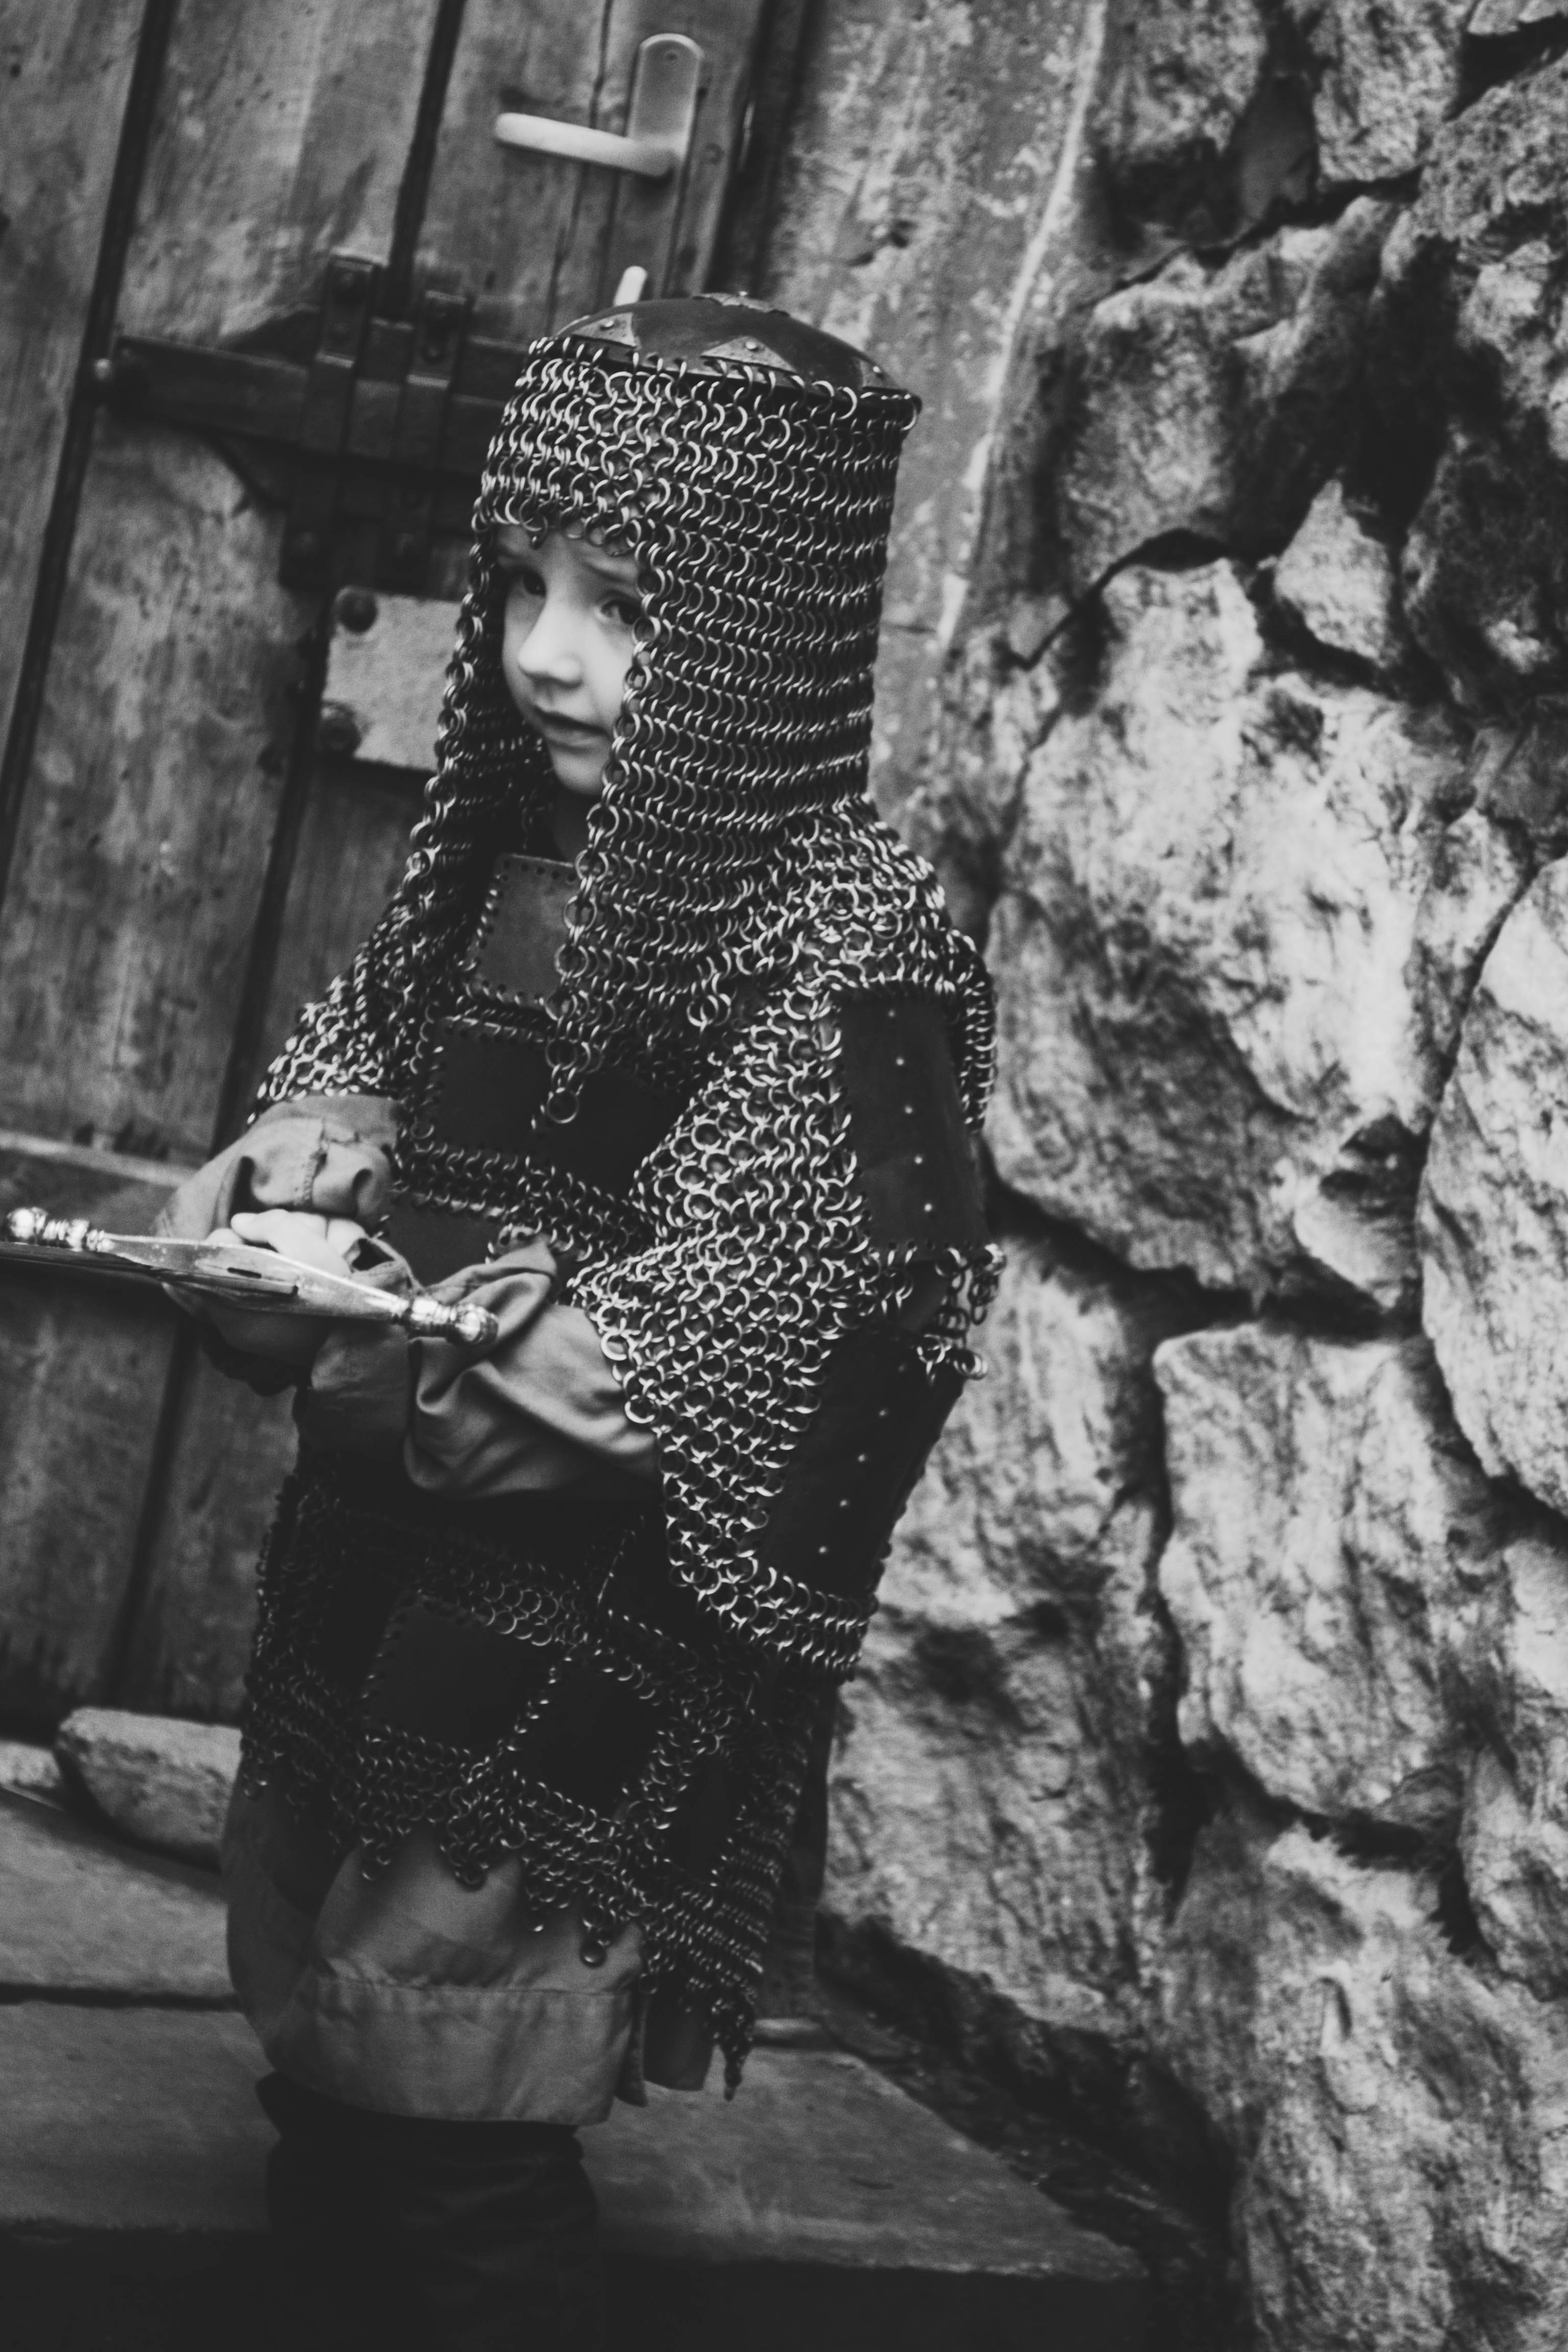 grayscale photo of child wearing chain mail